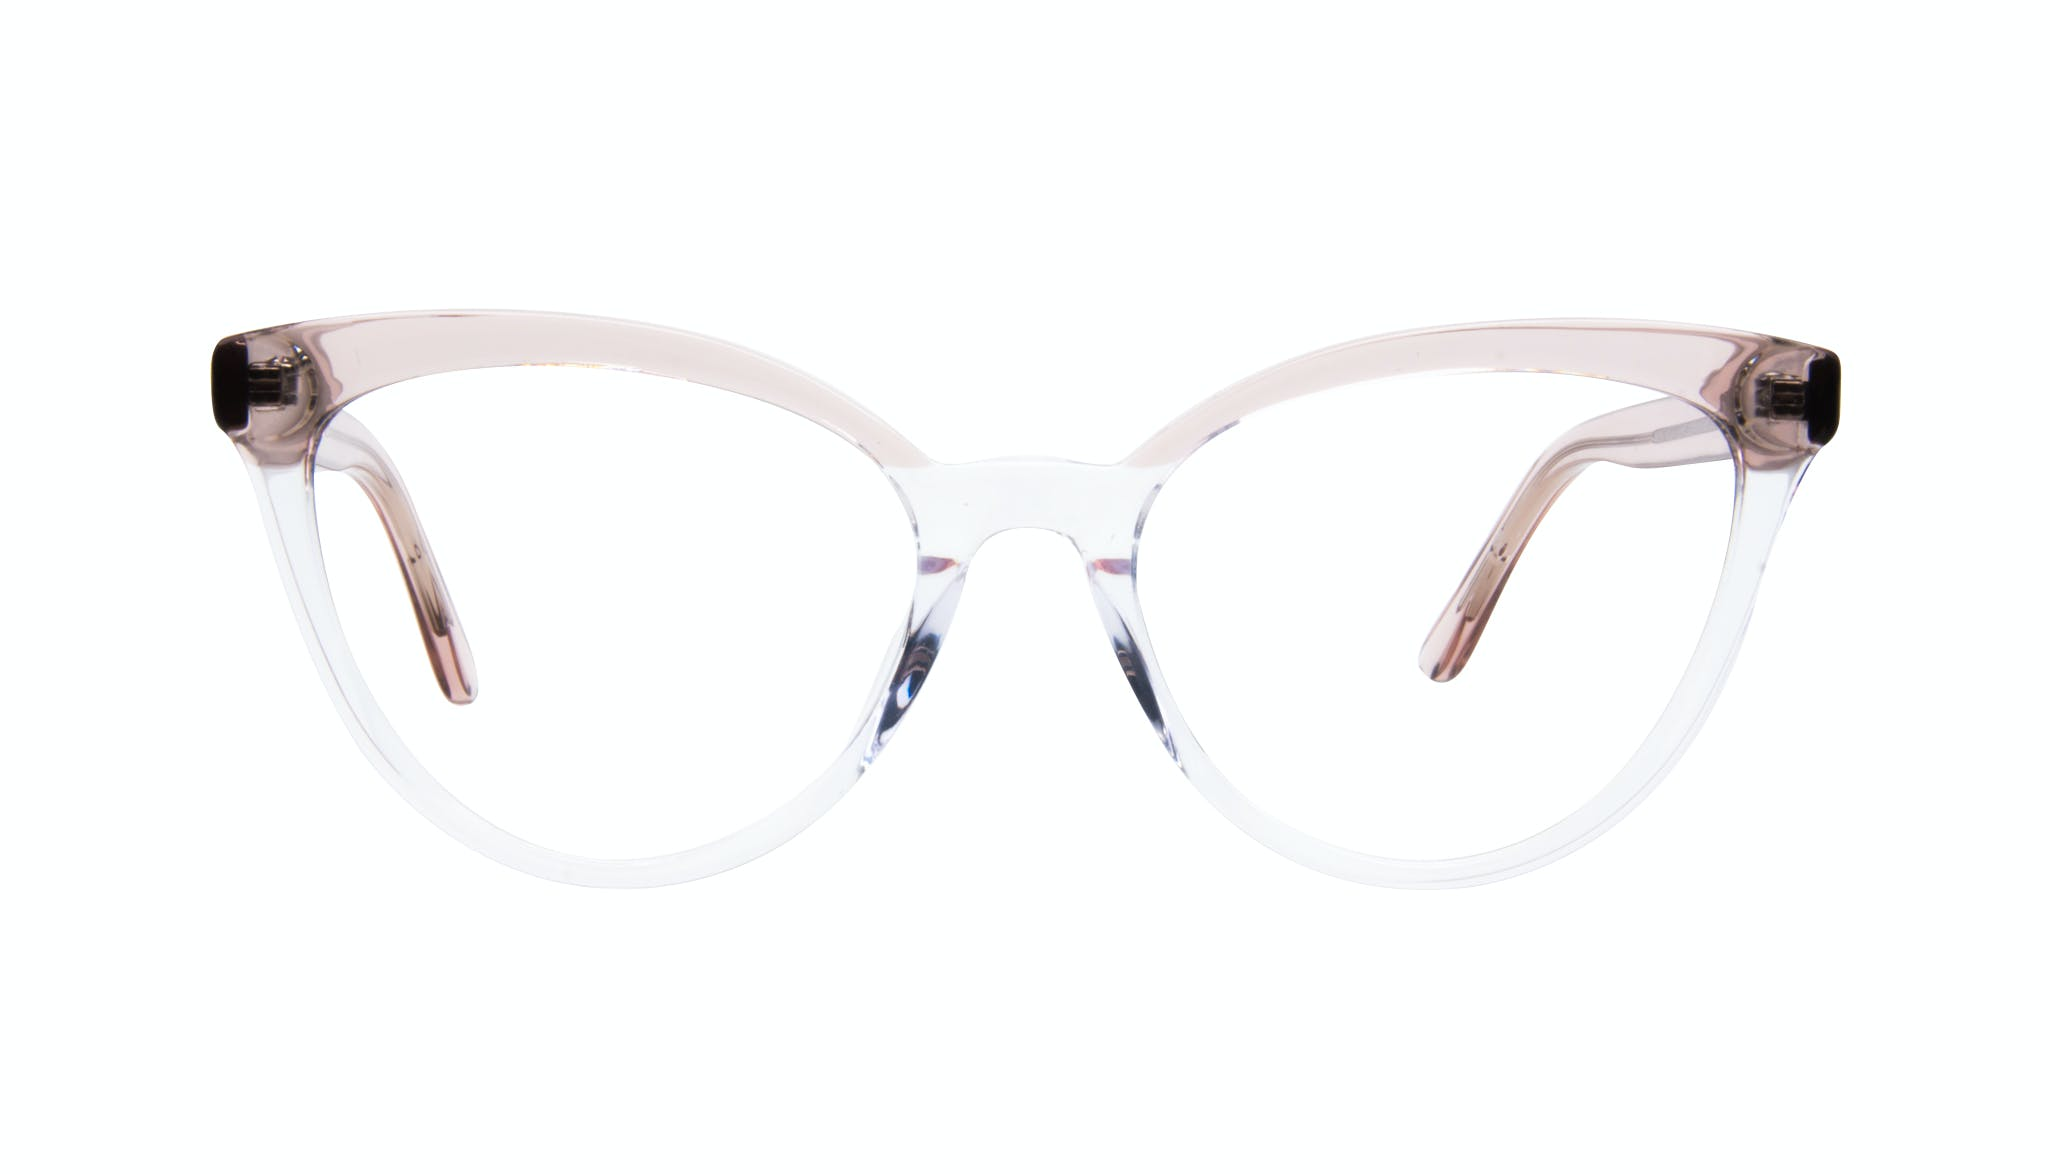 Affordable Fashion Glasses Cat Eye Daring Cateye Eyeglasses Women Reverie Clear rose Front